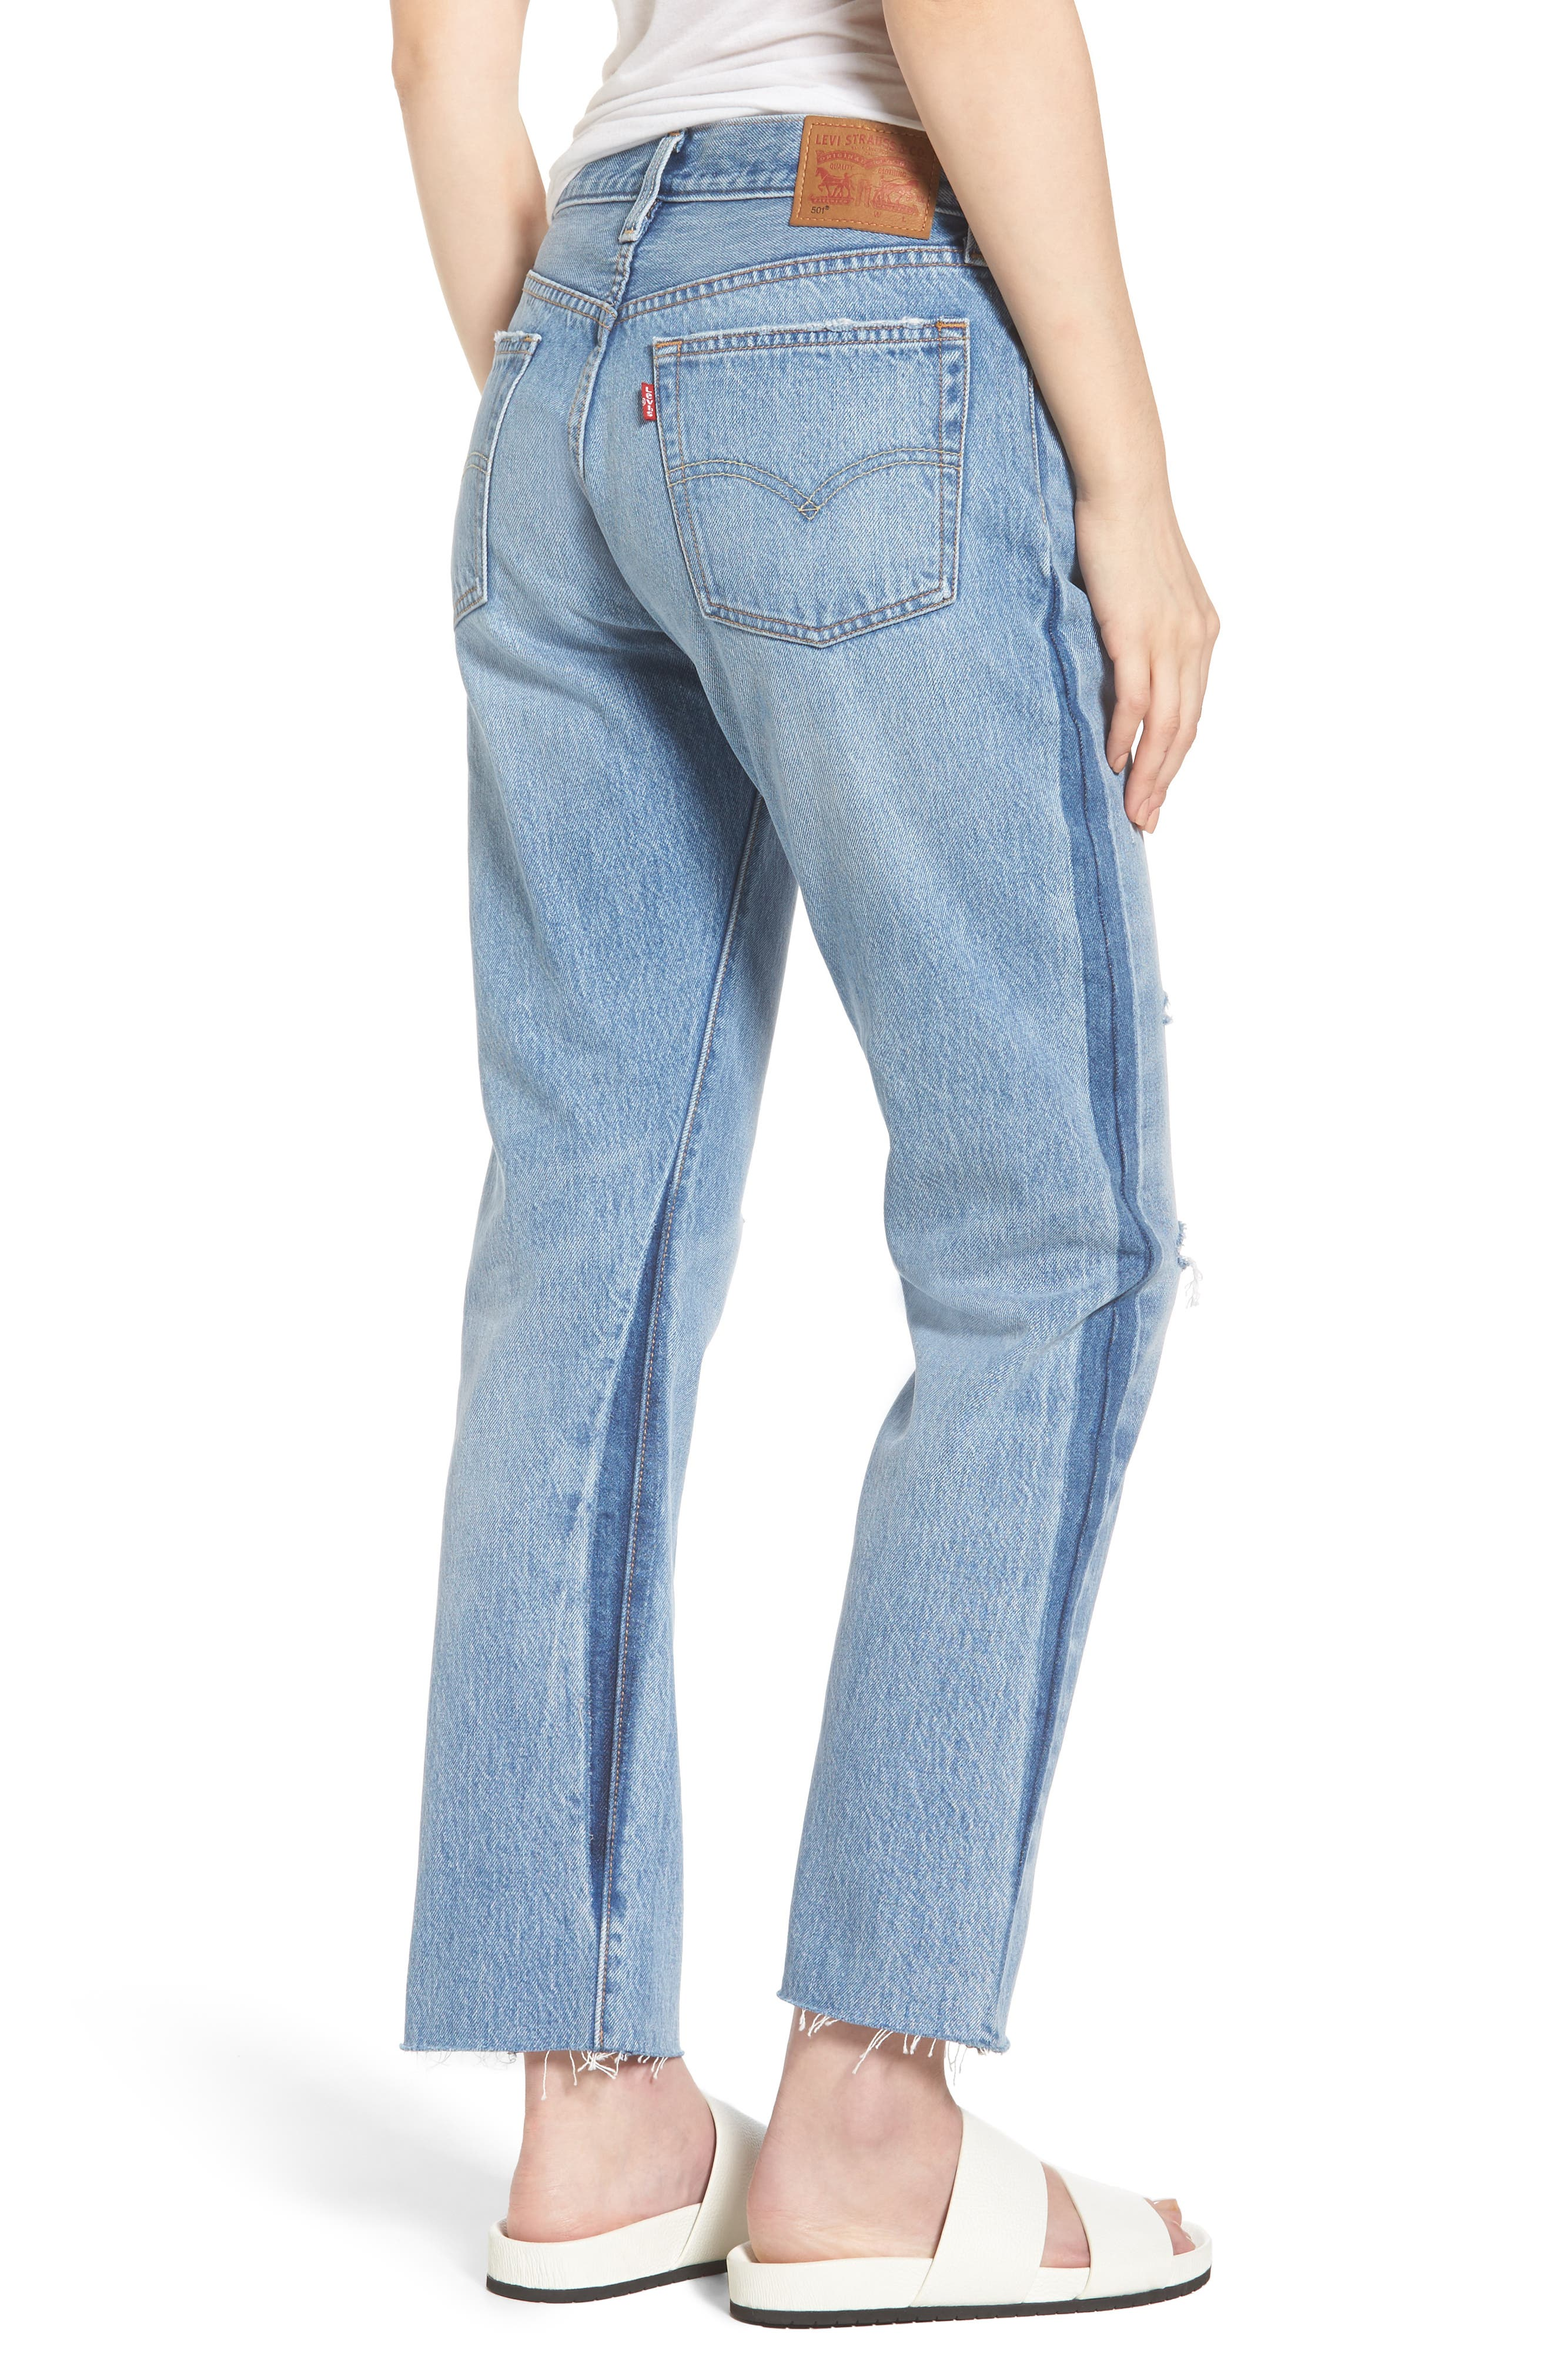 Alternate Image 2  - Levi's® 501 Crop Jeans (You Pretty Thing)